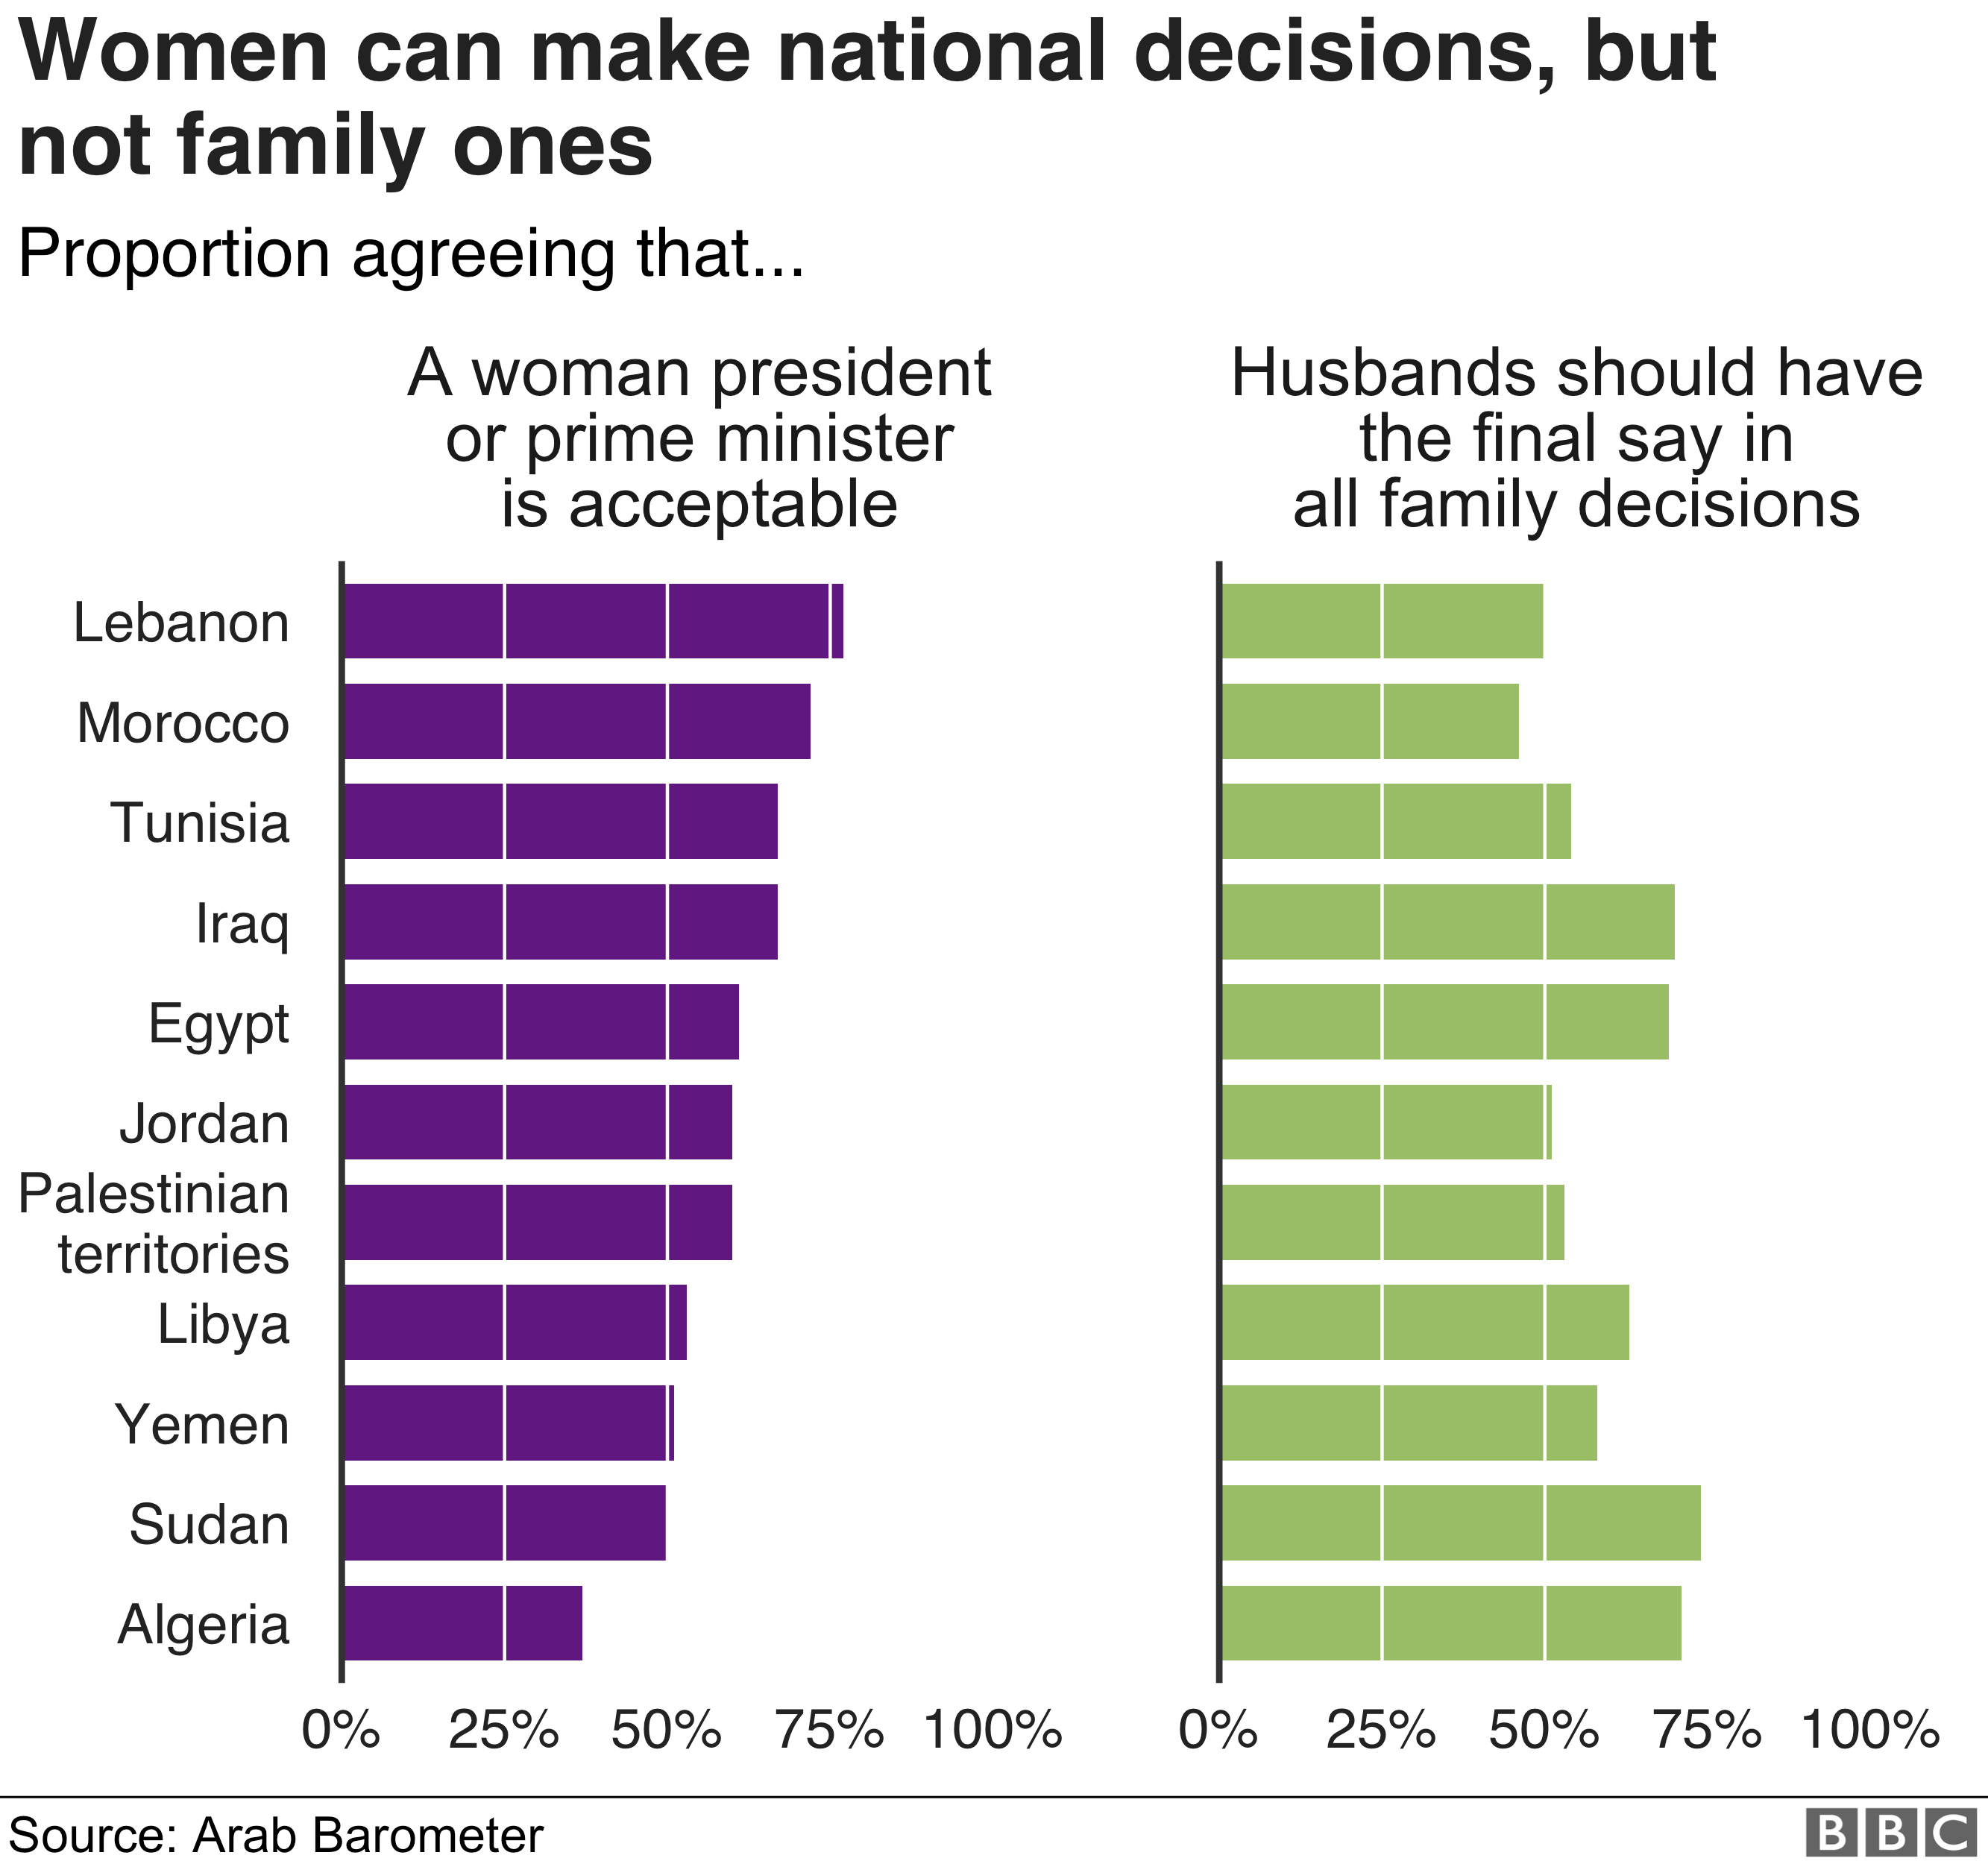 Chart showing that most people think a woman as prime minister is acceptable but think a husband should have the final say in family decisions